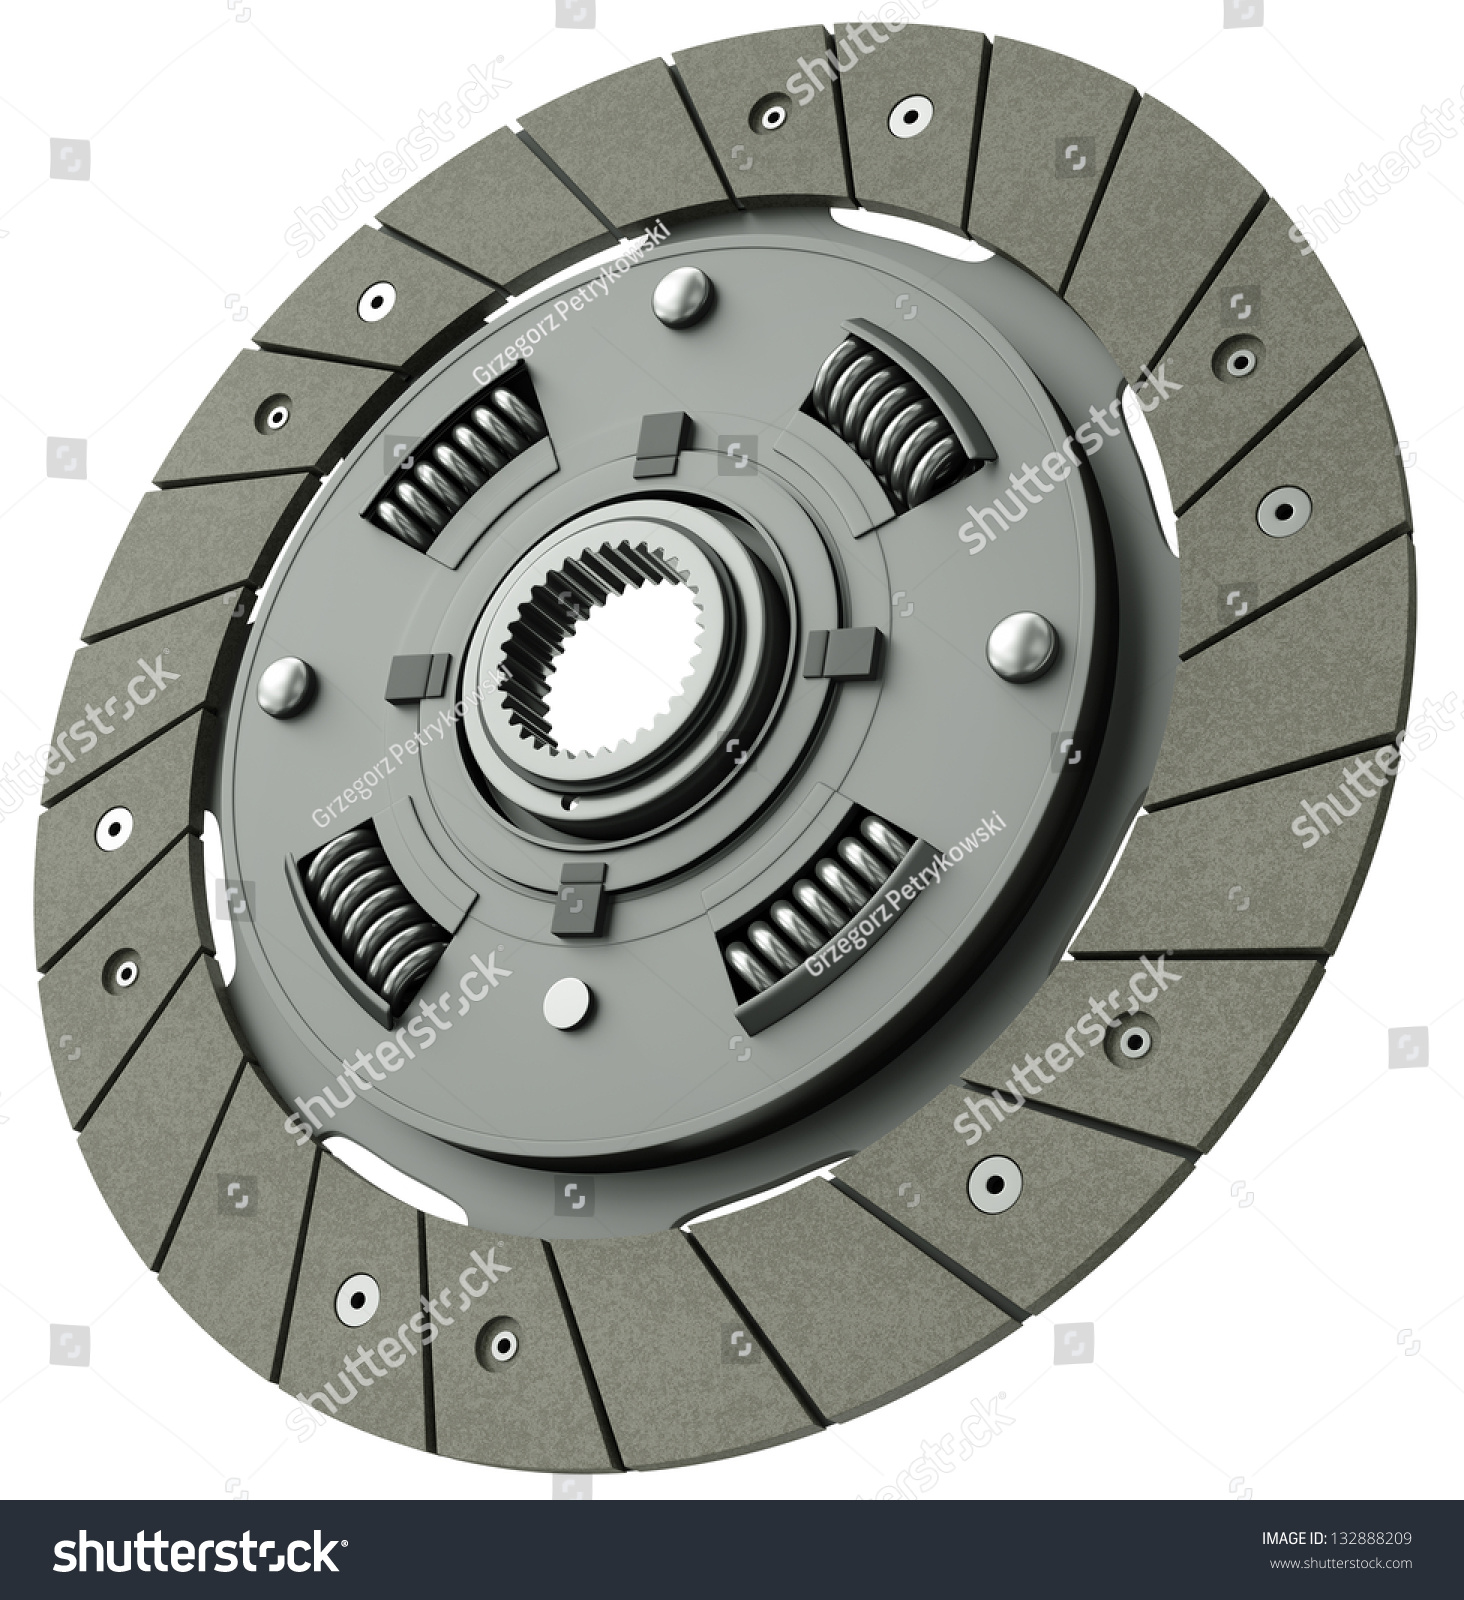 Automotive Clutch Plate : Car clutch plate isolated on white stock illustration